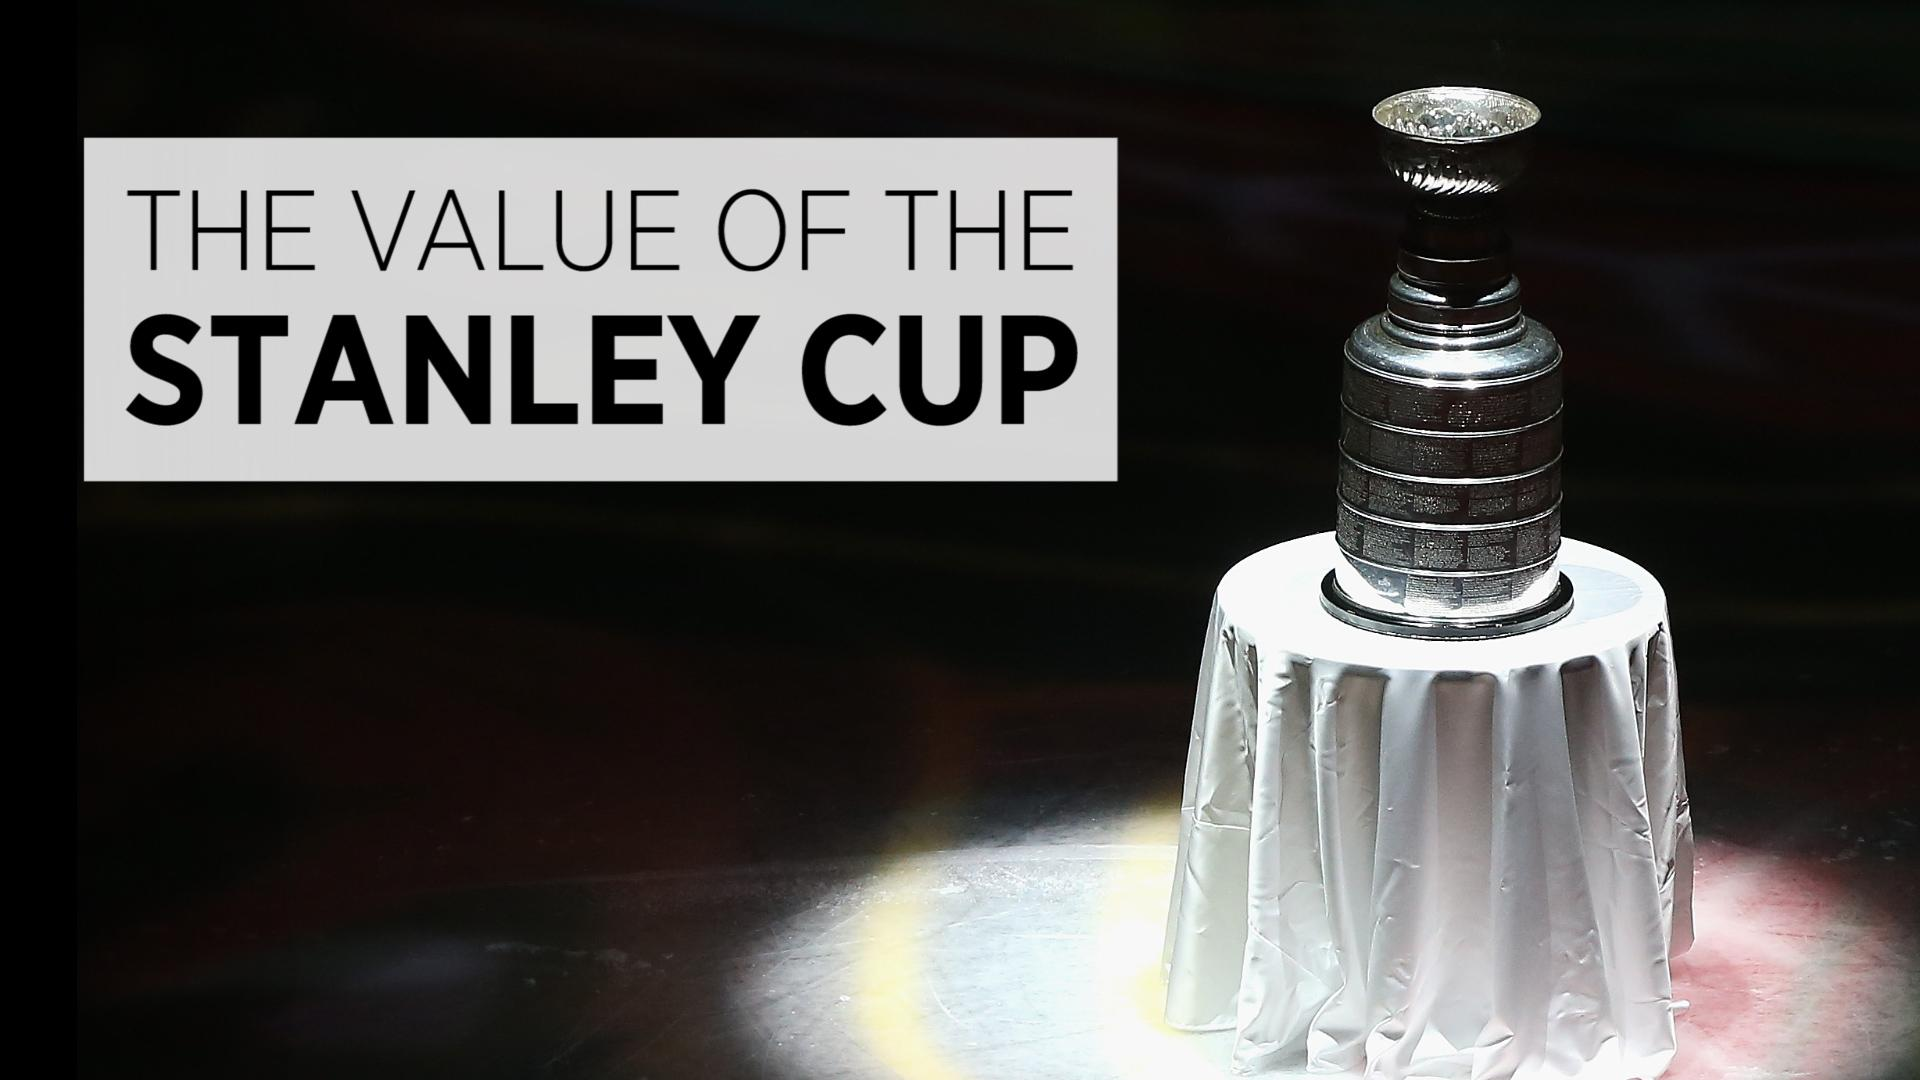 Value Of The Stanley Cup